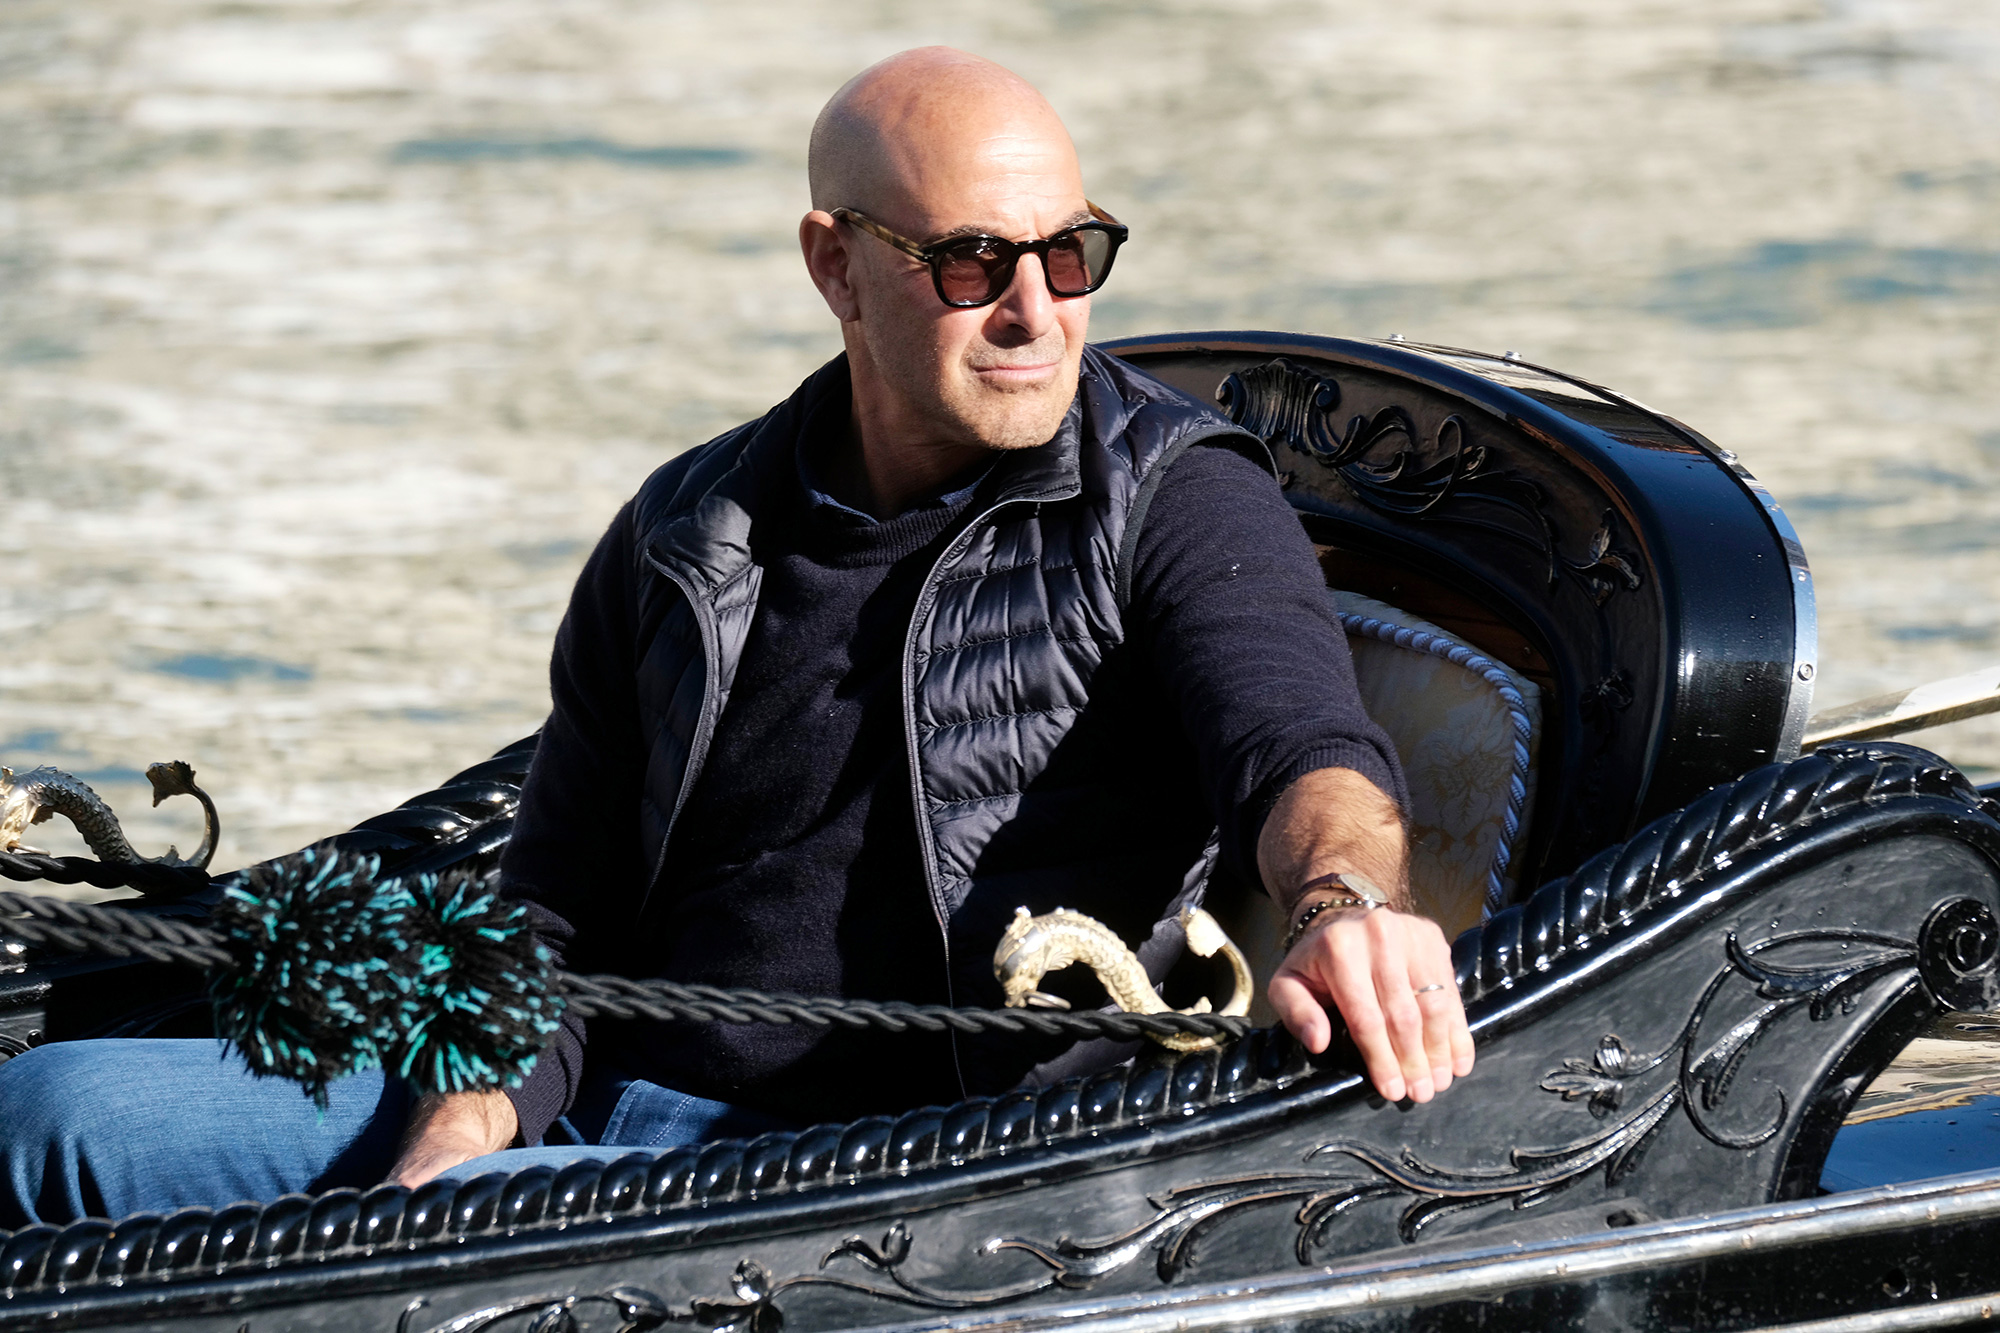 Stanley Tucci filming the American travel and food show Searching for Italy in Venice, Italy. Stanley Tucci is seen filming in Venice, Italy - 14 Oct 2021